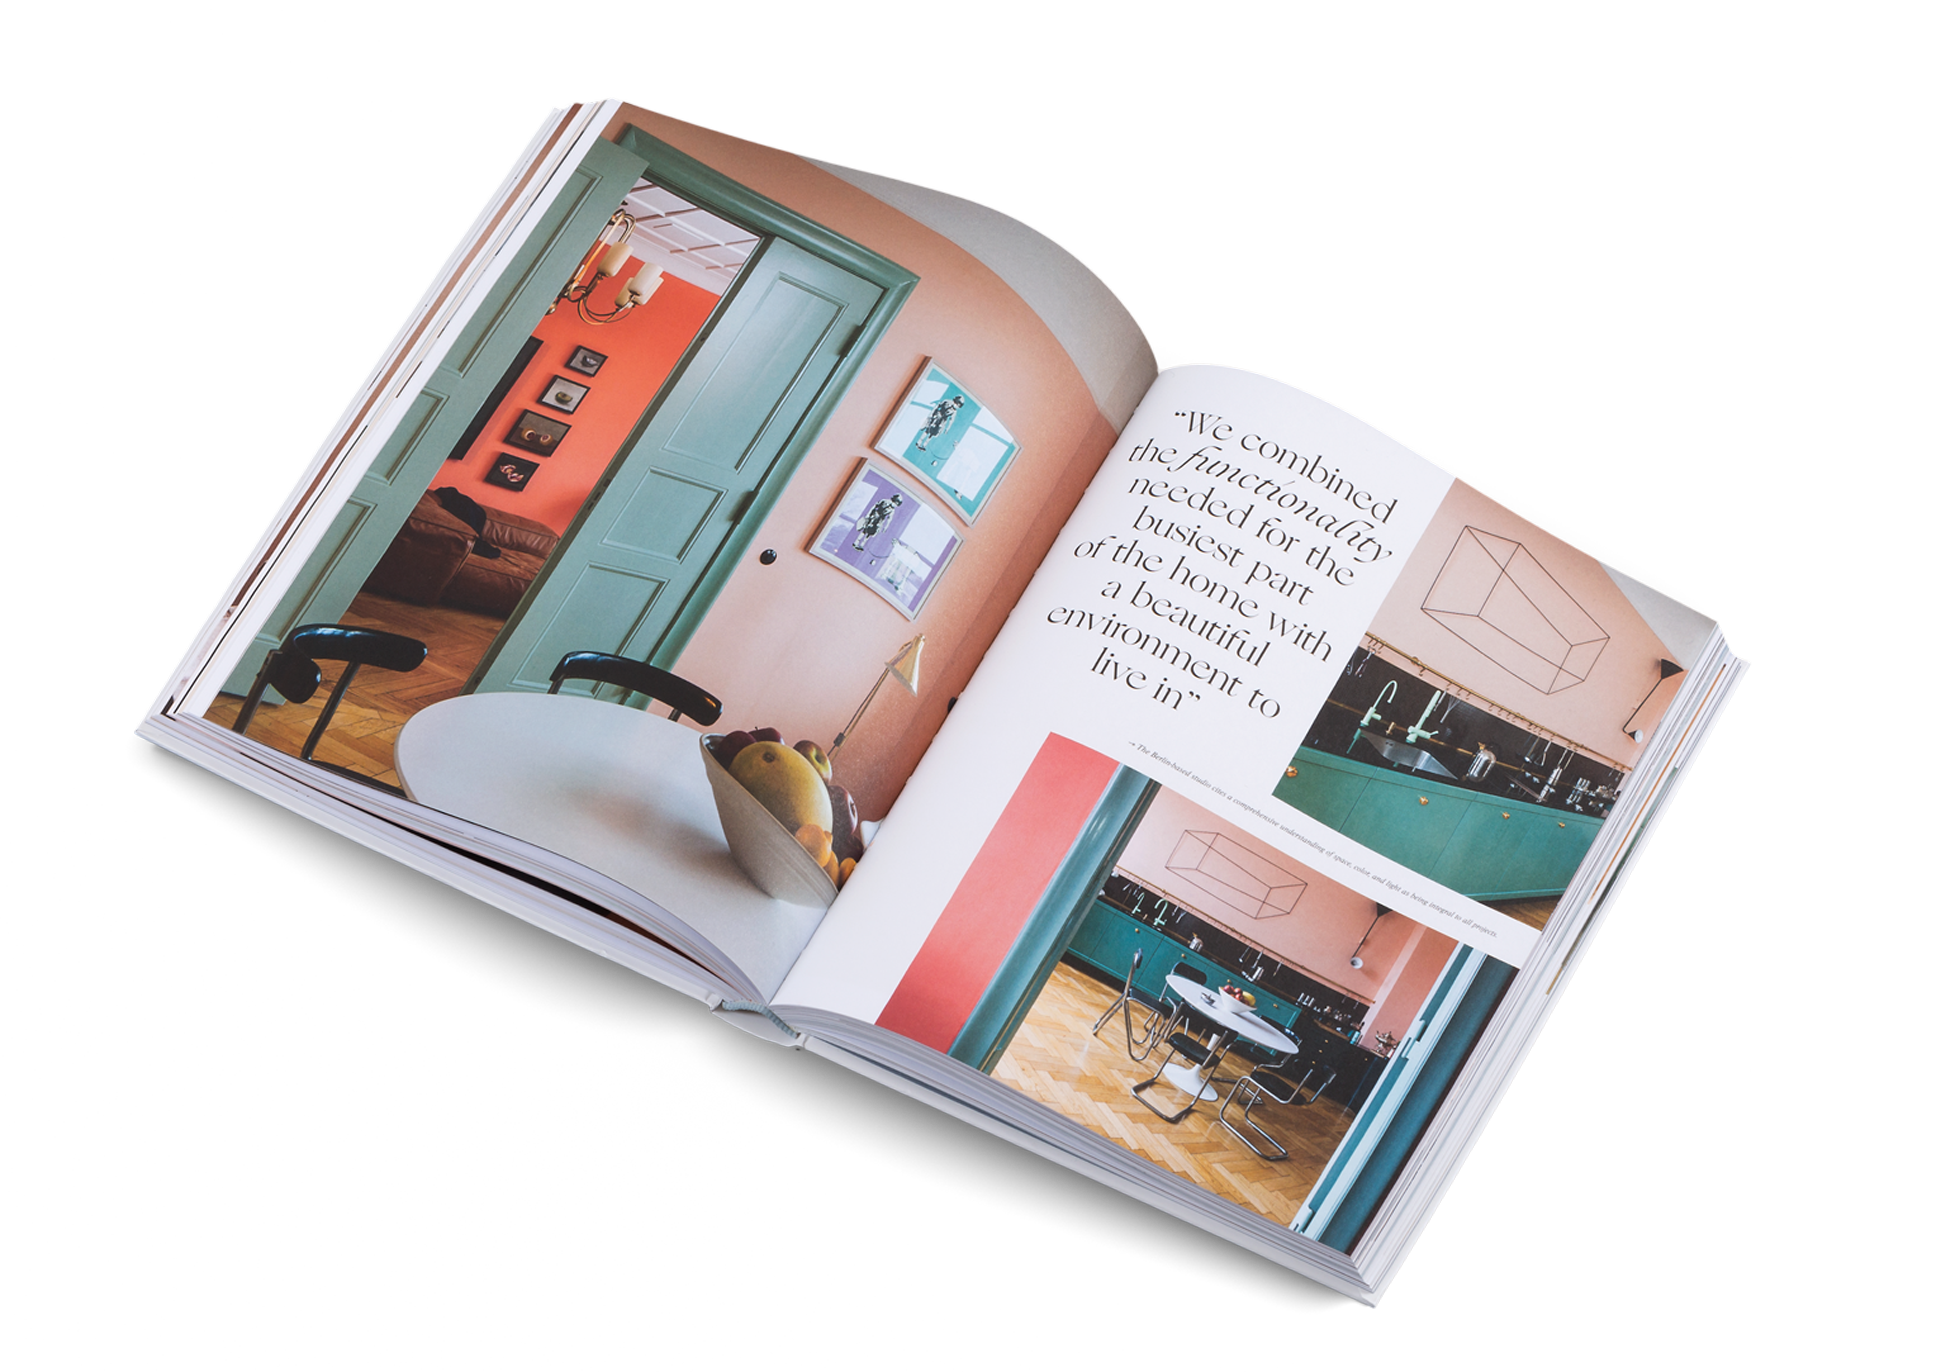 KitchenLivingEN_gestalten_book_contemporary_kitchen_interior_front_inside04_2000x.png